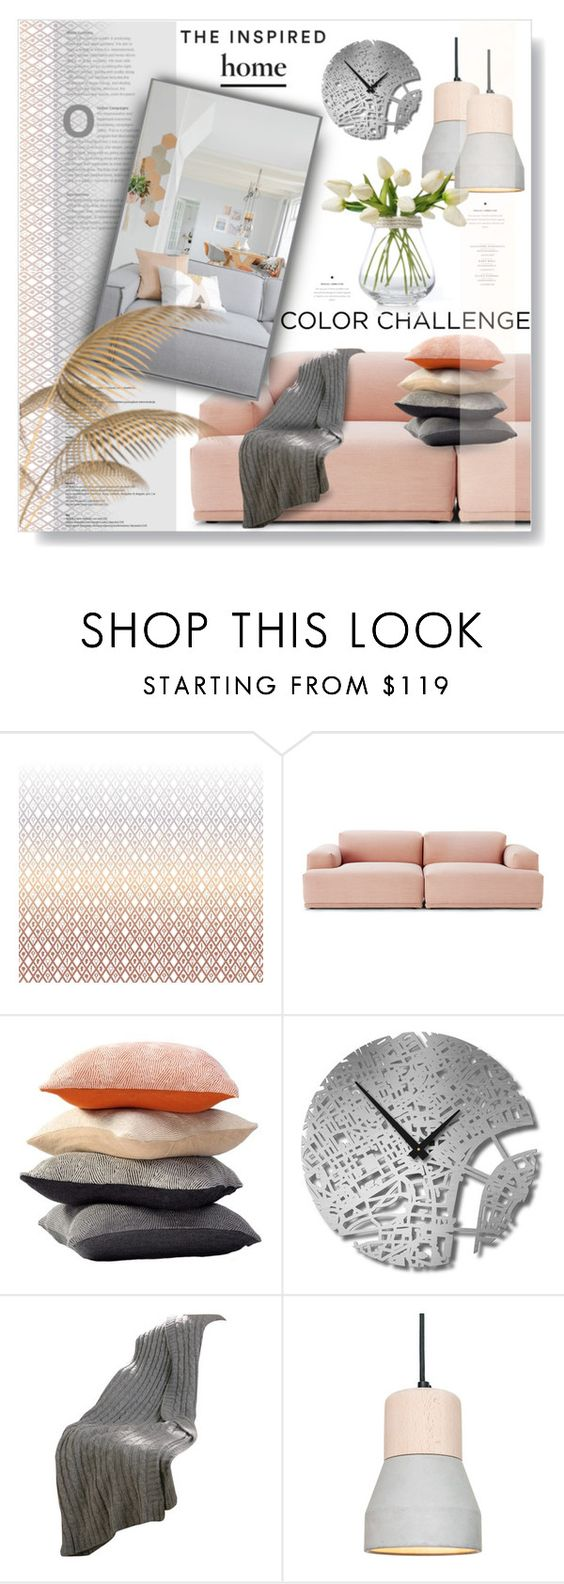 """""""Inspired + Home..."""" by desert-belle ❤ liked on Polyvore featuring interior, interiors, interior design, home, home decor, interior decorating, Muuto, Sefte, Dot & Bo and polyvoreeditorial"""